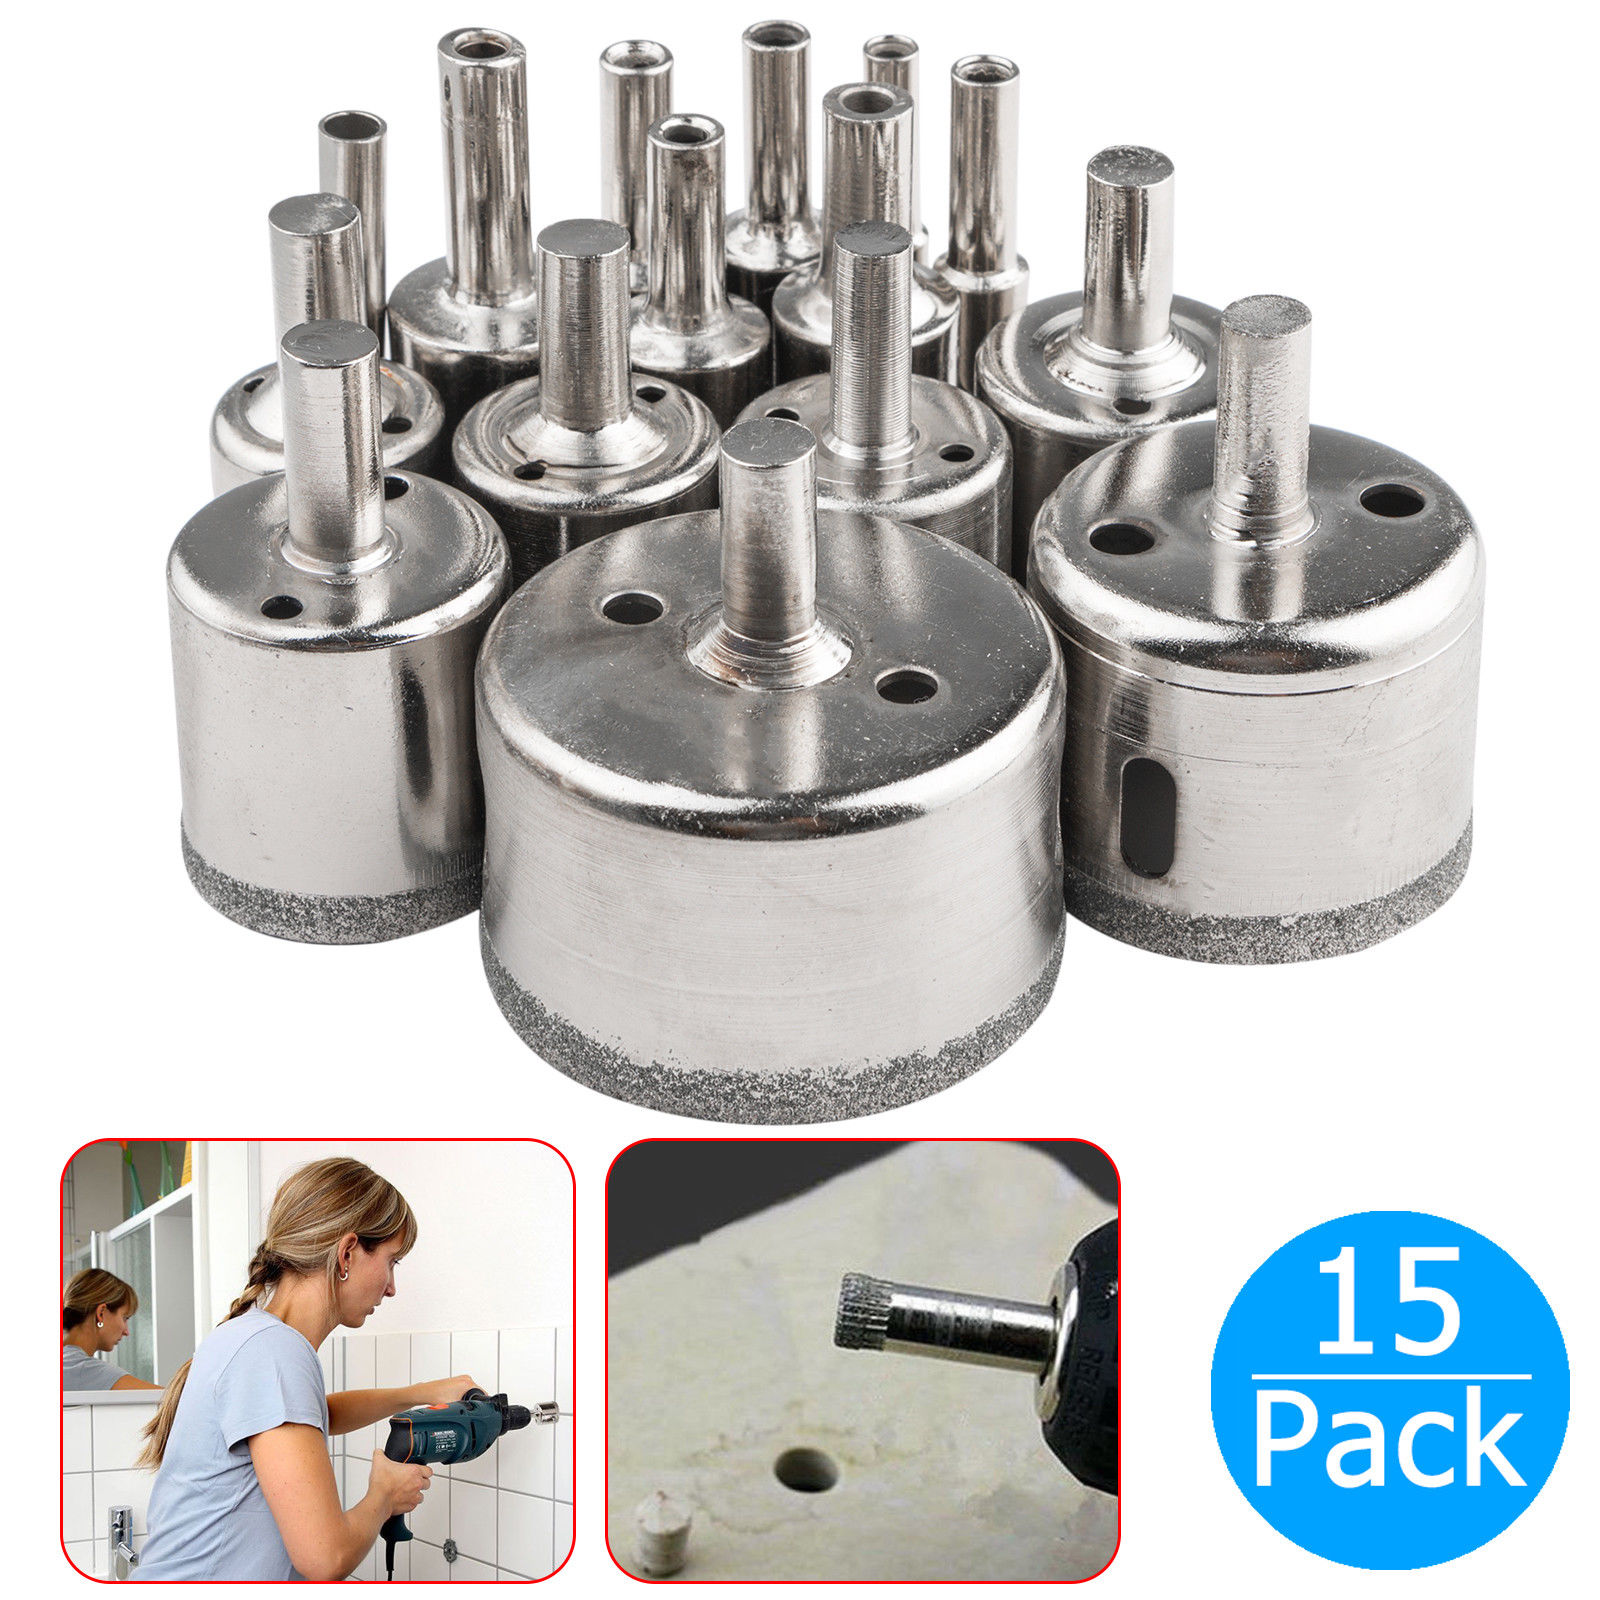 15-pack Diamond Hole Saw Drill Bit Set Cutting Tool for Tile Marble Glass 6mm-50mm